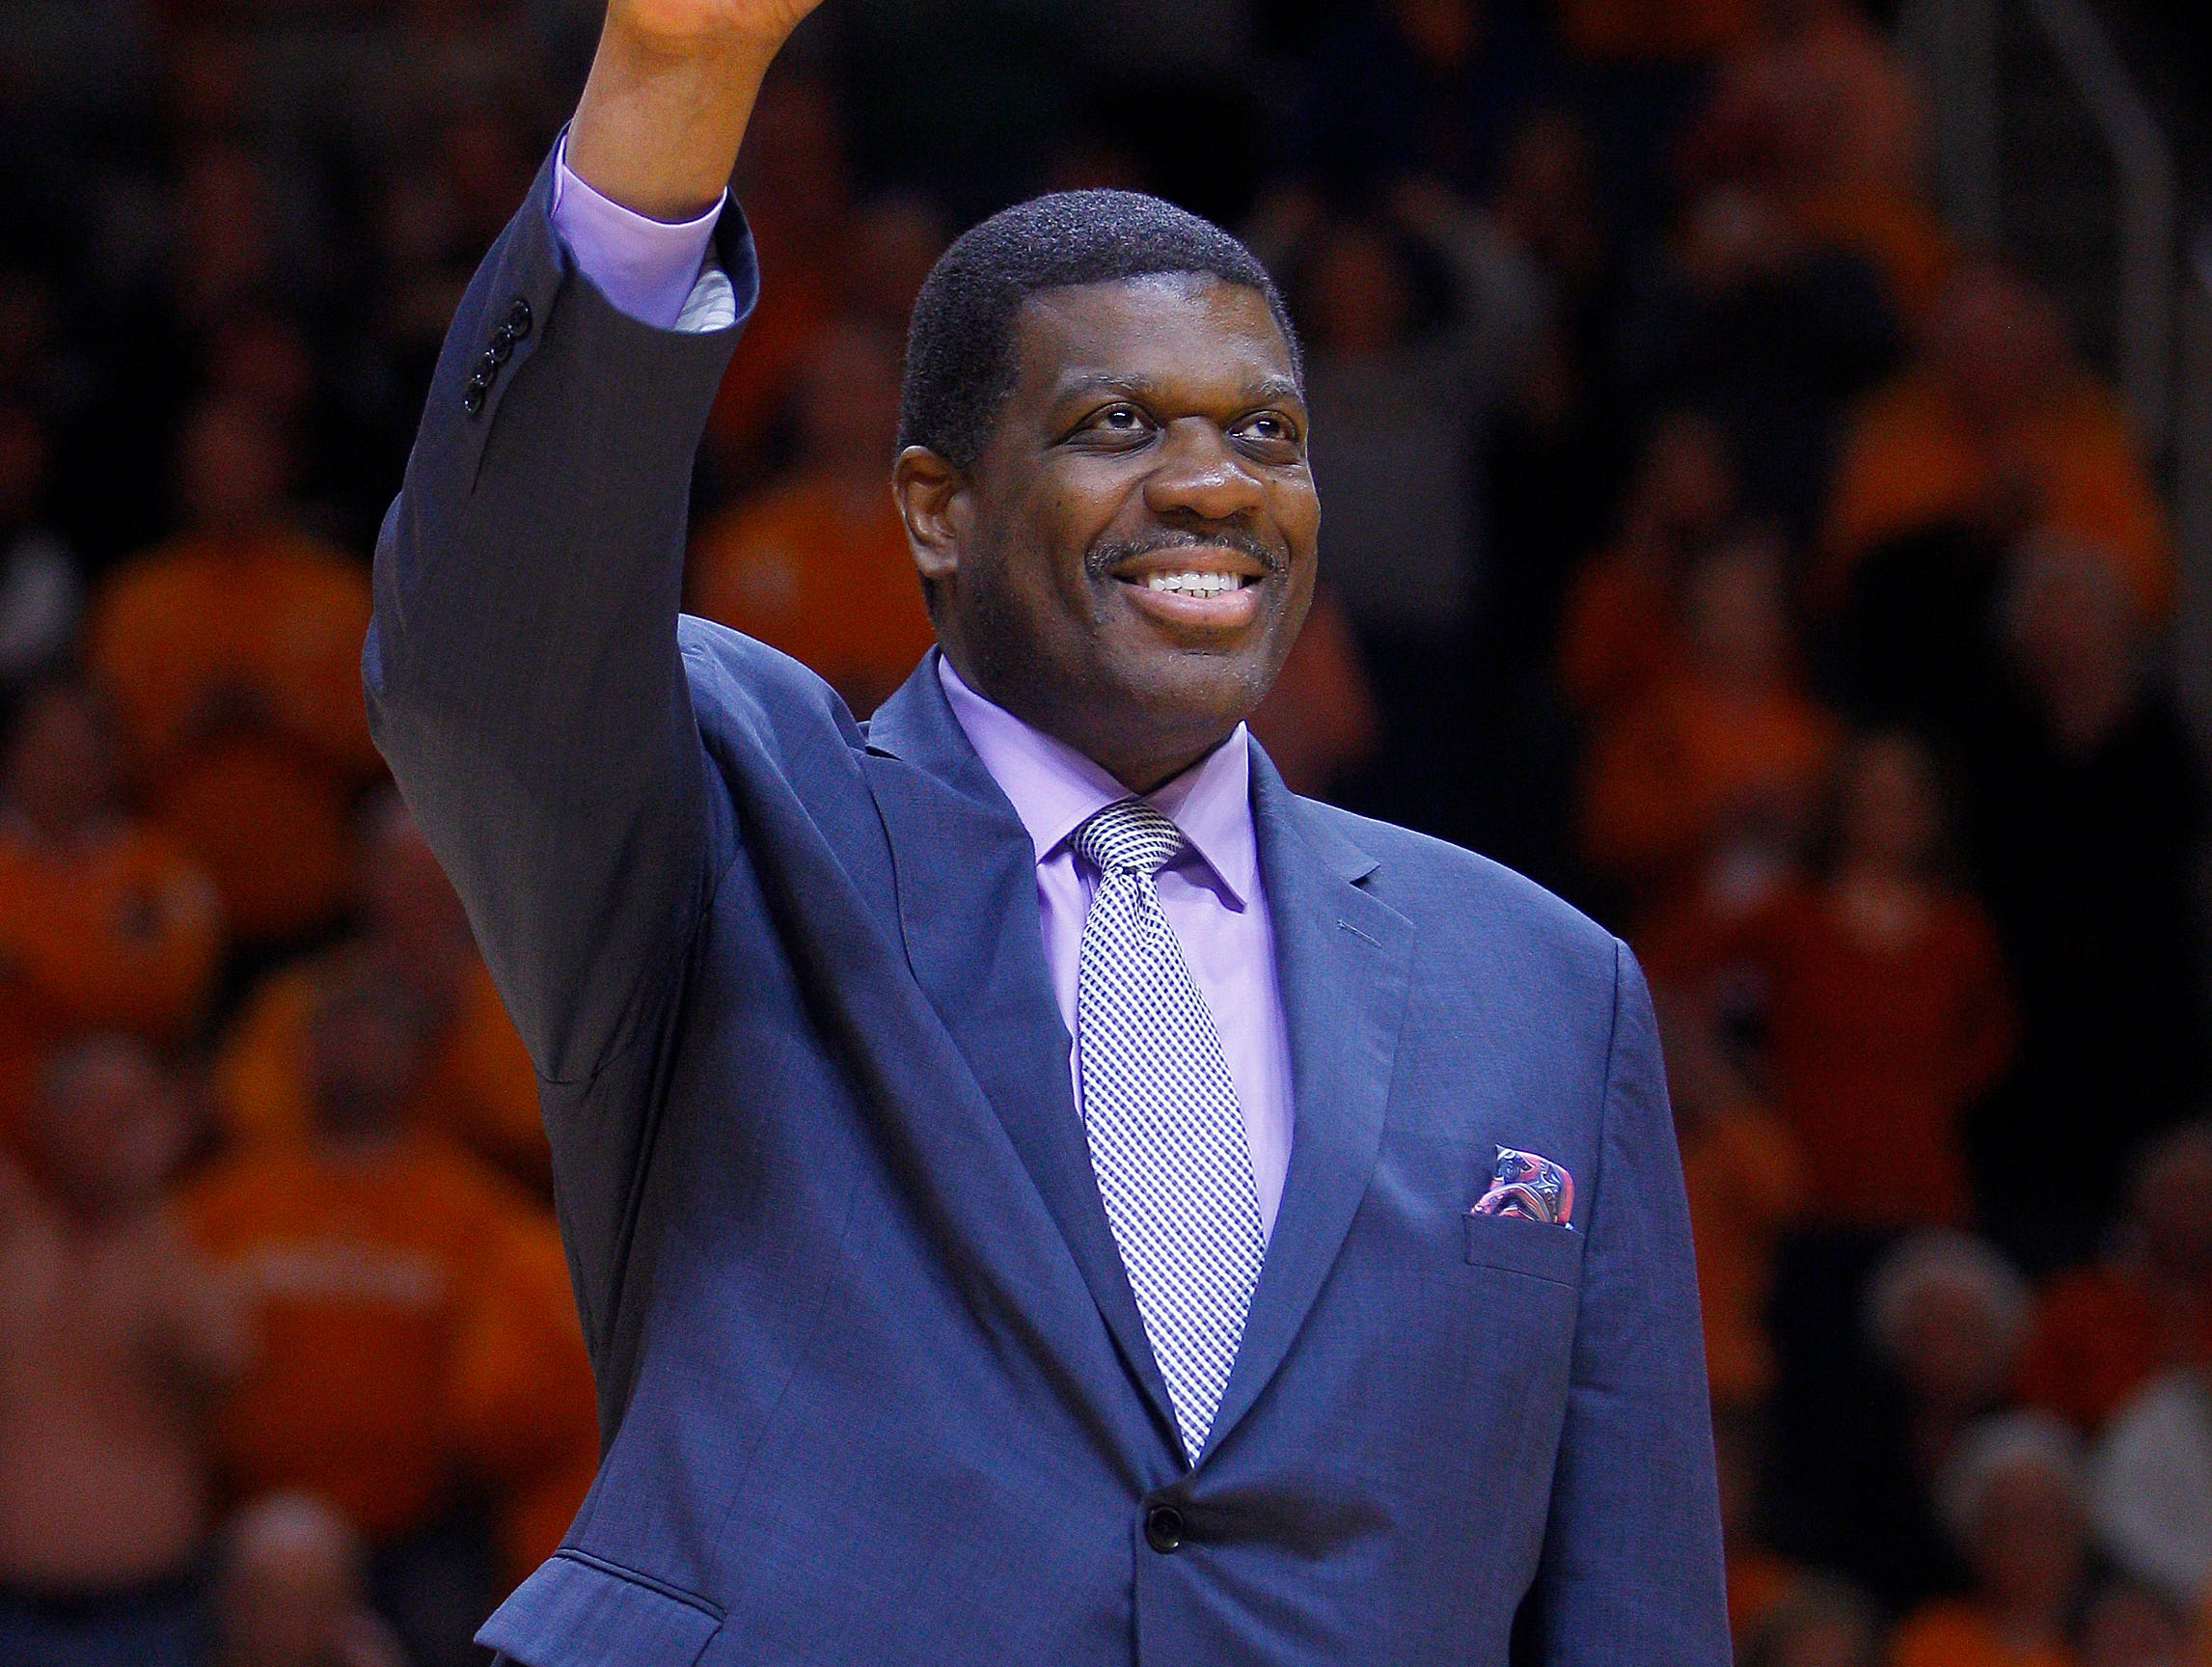 Former Tennessee center, Bernard King is introduced at halftime of an NCAA college basketball game against South Carolina on Saturday, March 7, 2015, in Knoxville, Tenn. (Photo by Wade Payne, Special to the News Sentinel)